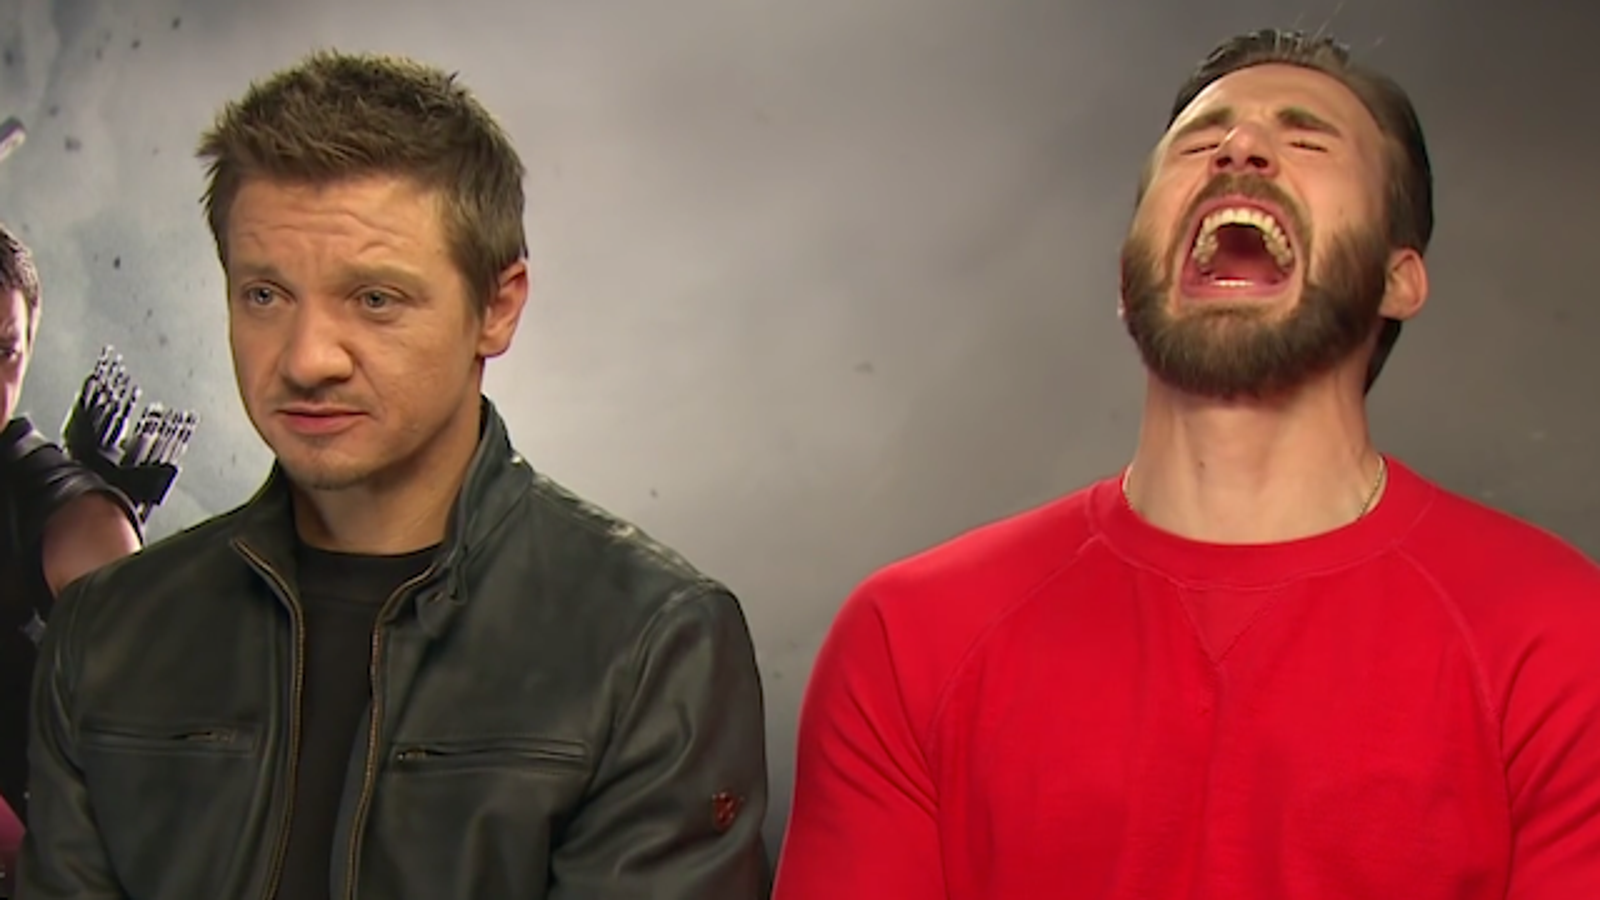 Chris Evans and Jeremy Renner apologized for the stupid joke about heroine Johansson 04/25/2015 19